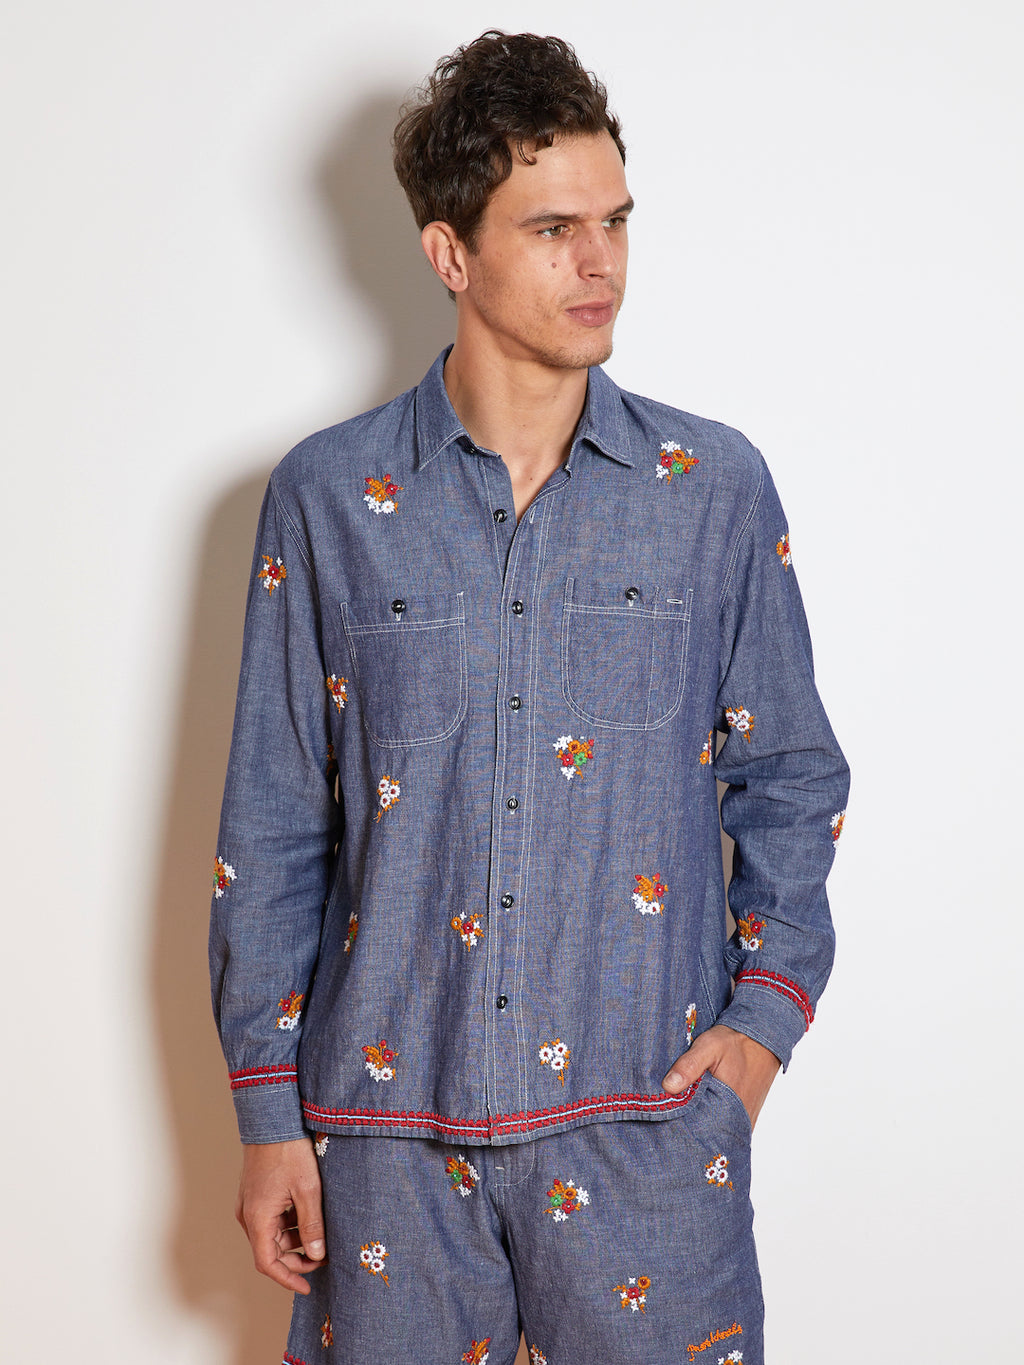 President's P's Embroidered Arkansas Chambray Shirt